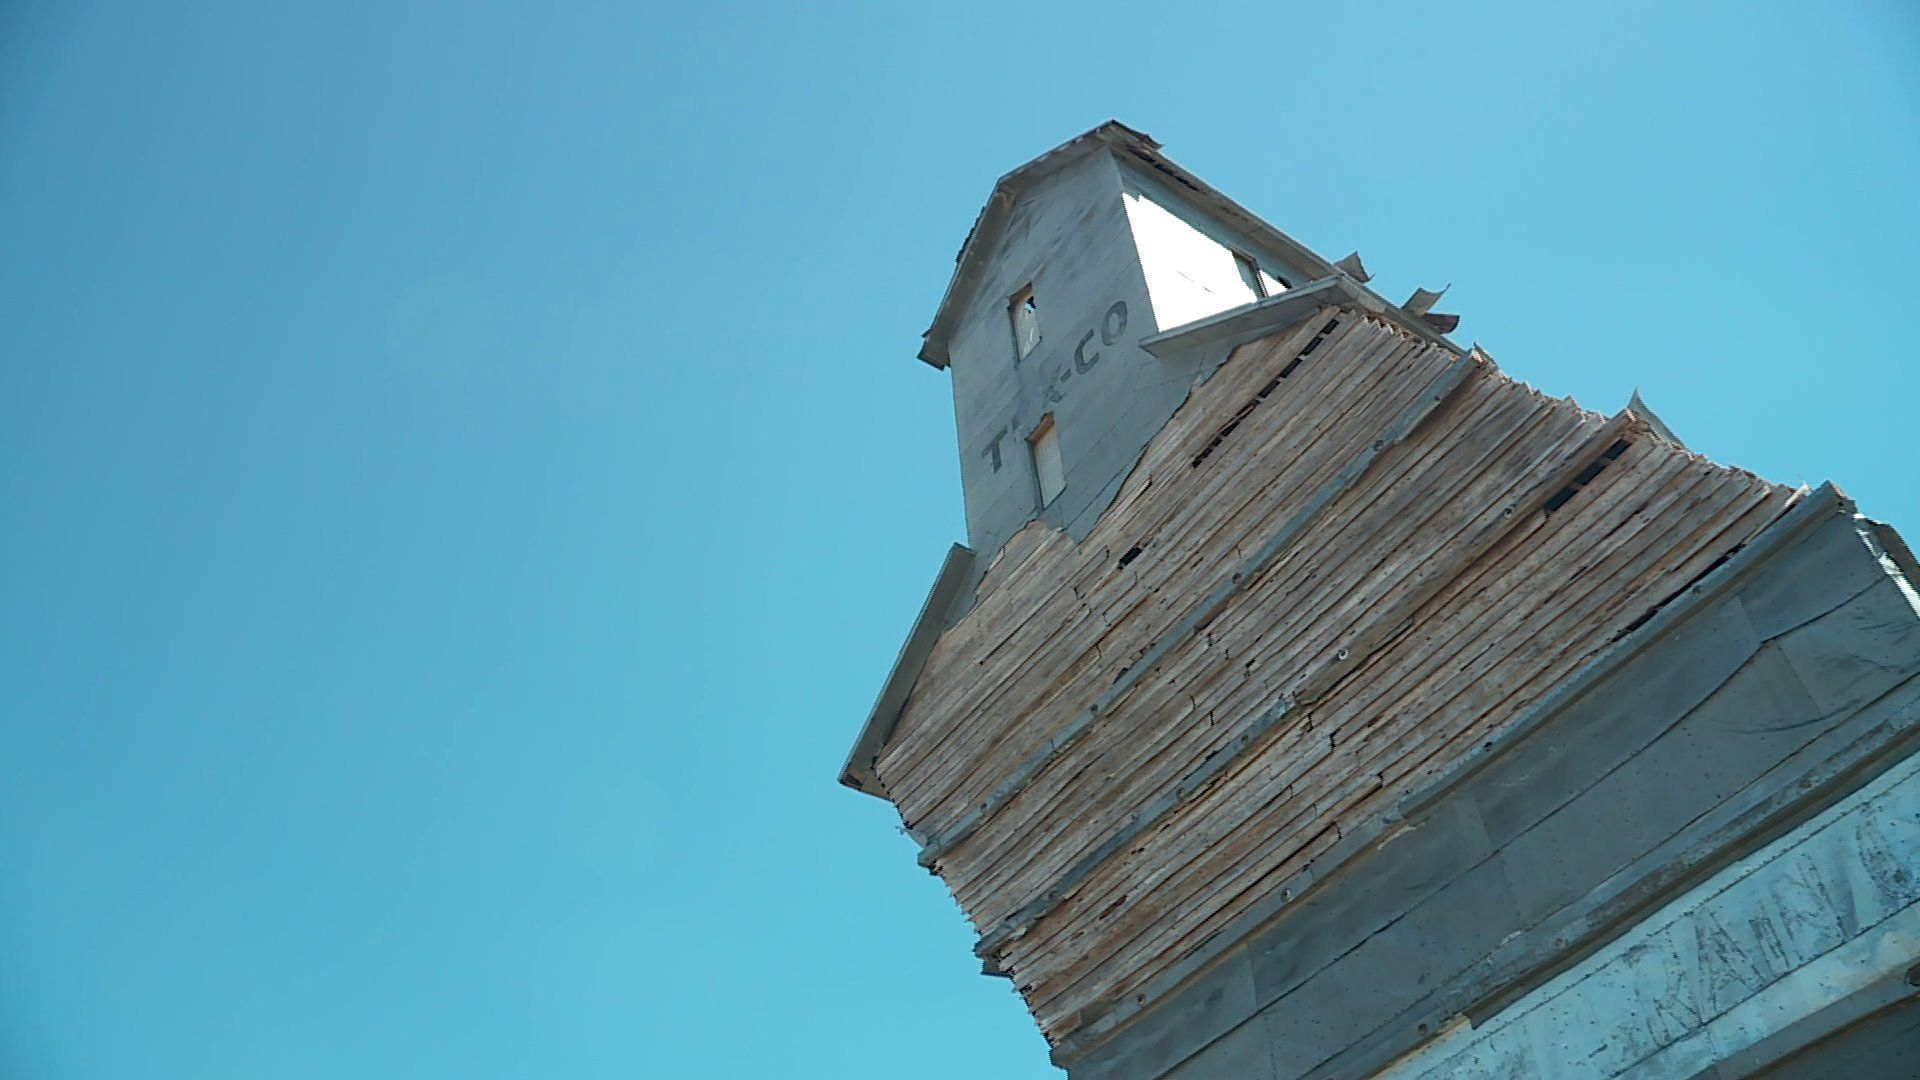 Oklahoma S Leaning Tower The Old Adams Grain Elevator Is In A